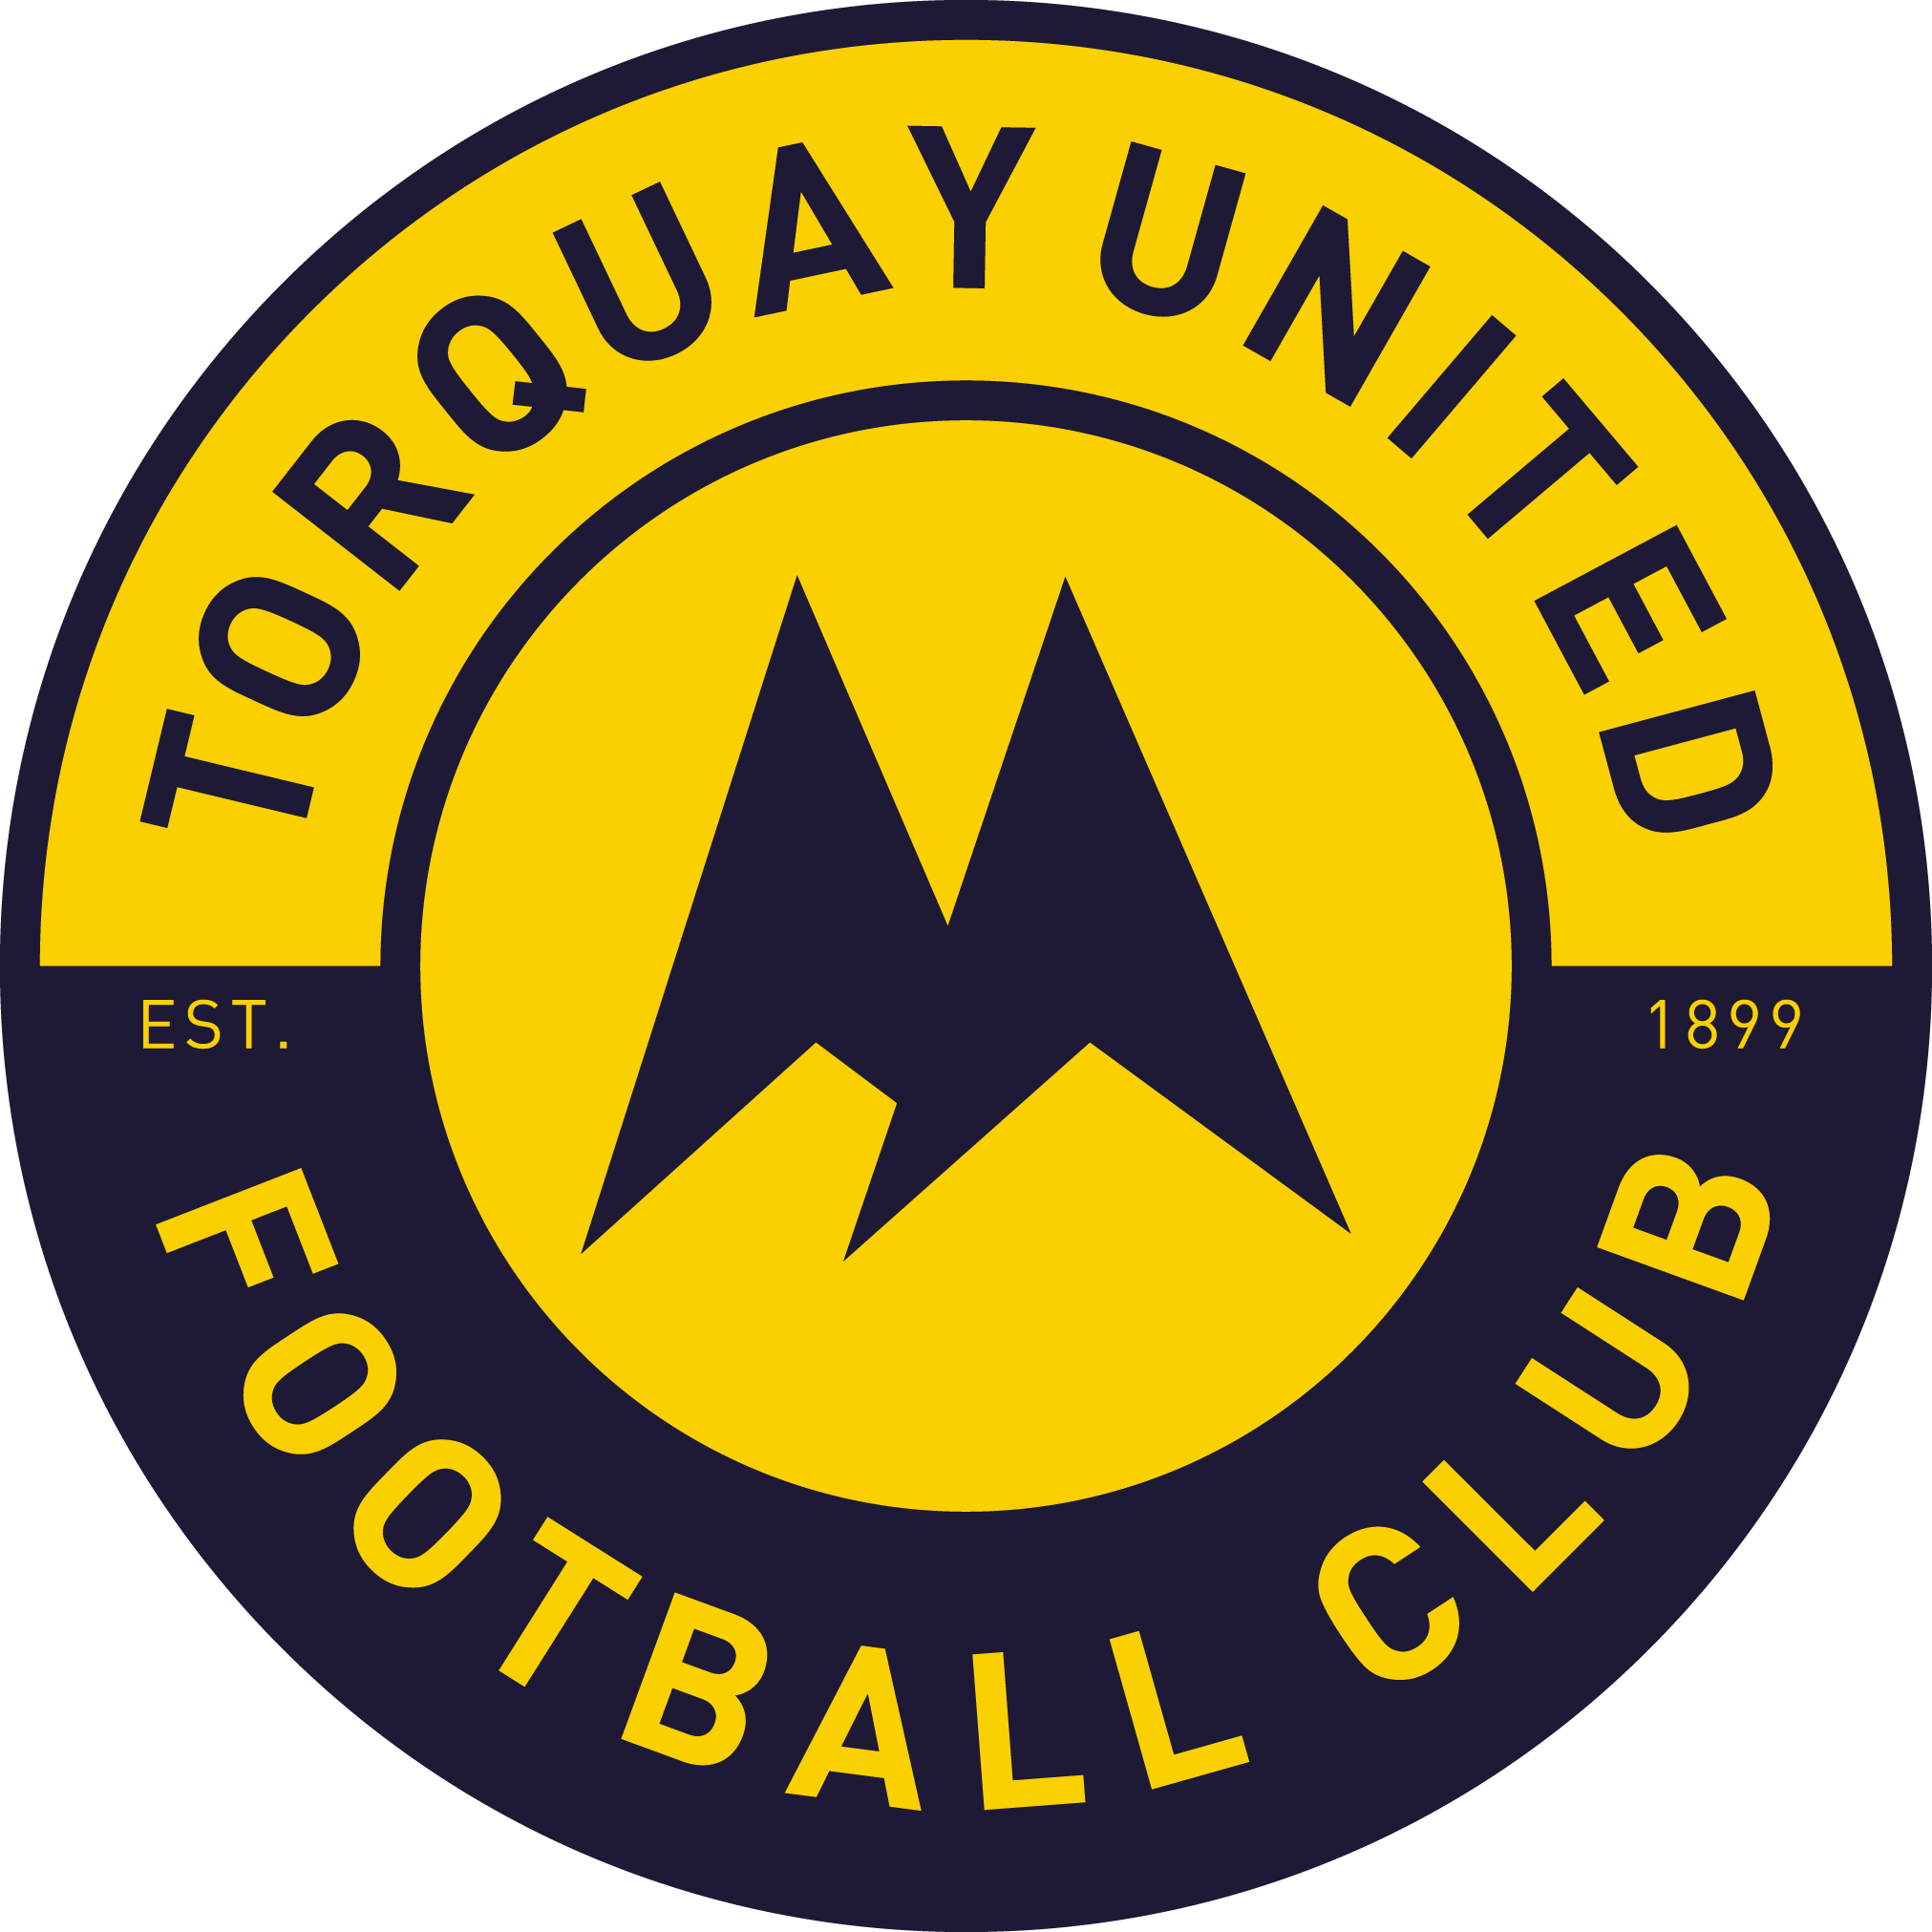 TUFC-CORPORATE-HOME-17-18-NEW-2.png.c029929eabe92102fc7153e1de3ae65c.png